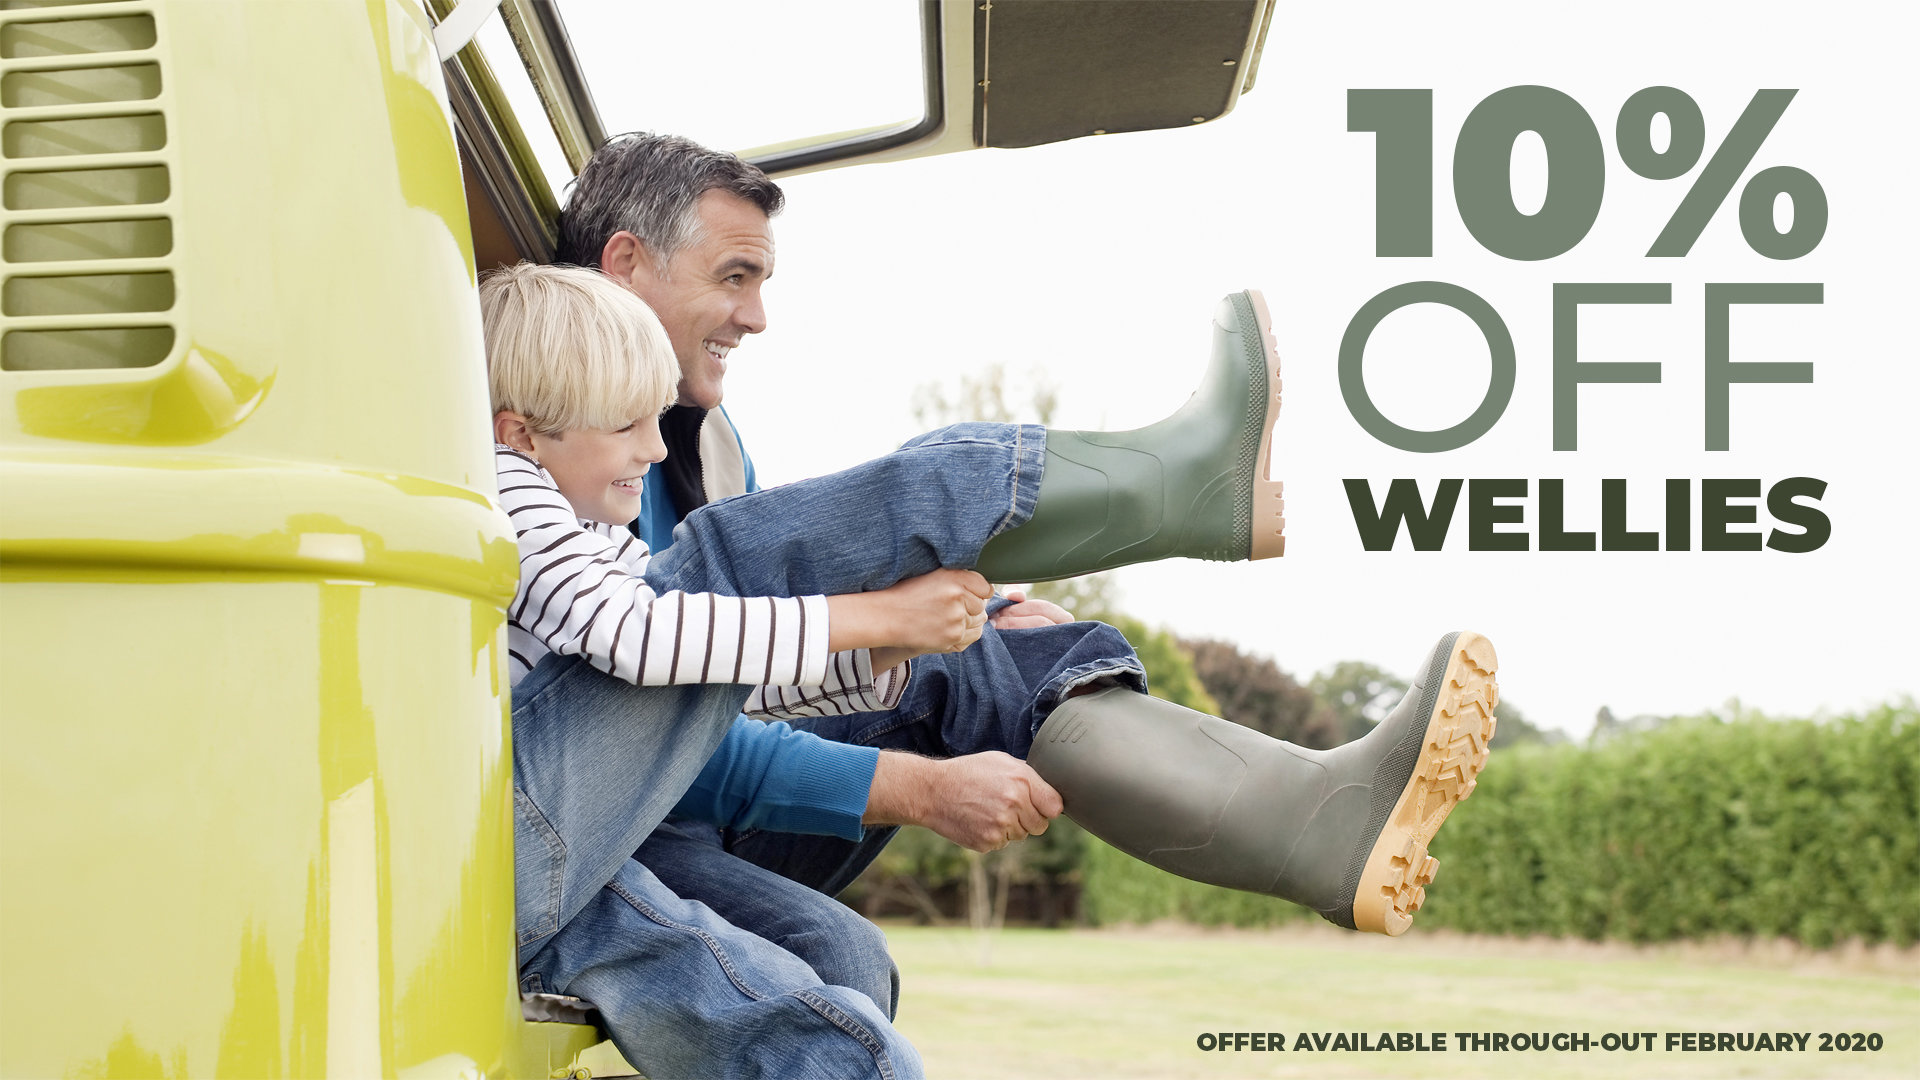 10% Off Wellies